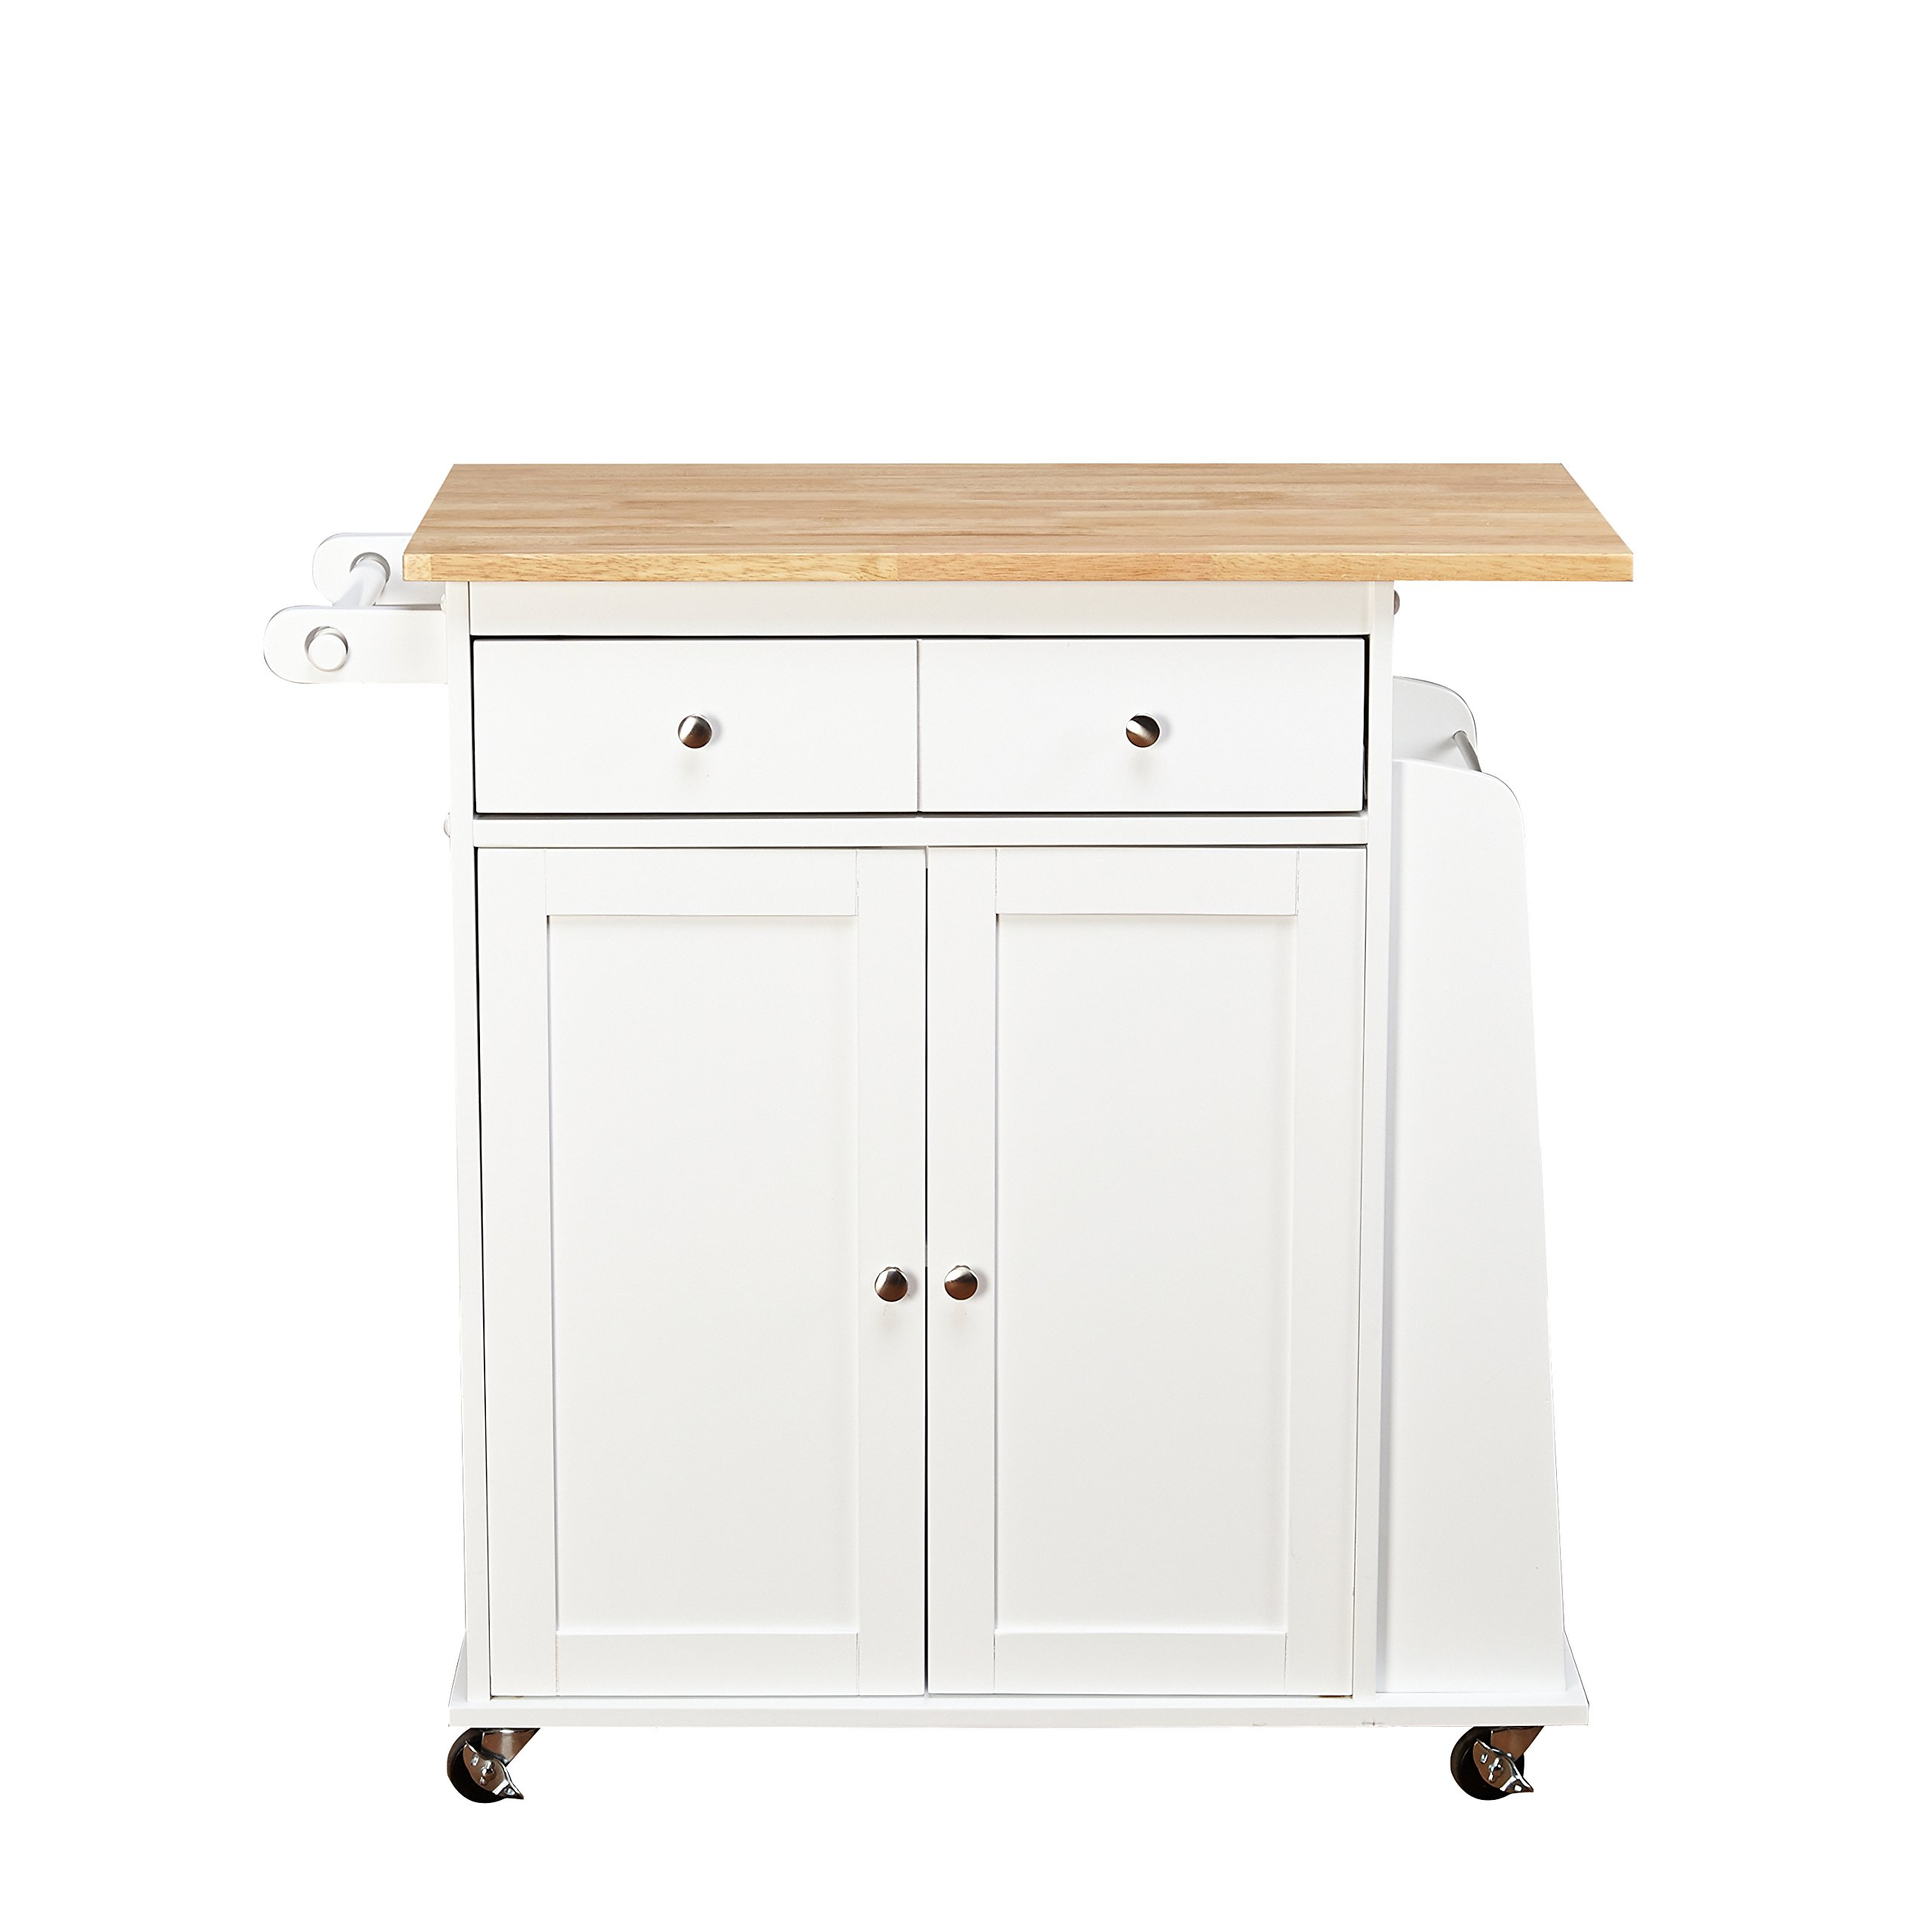 Target Marketing Systems Sonoma Collection Two-Toned Rolling Kitchen Cart with Drawer, Cabinet, and Spice Rack, White/Natural by Target Marketing Systems